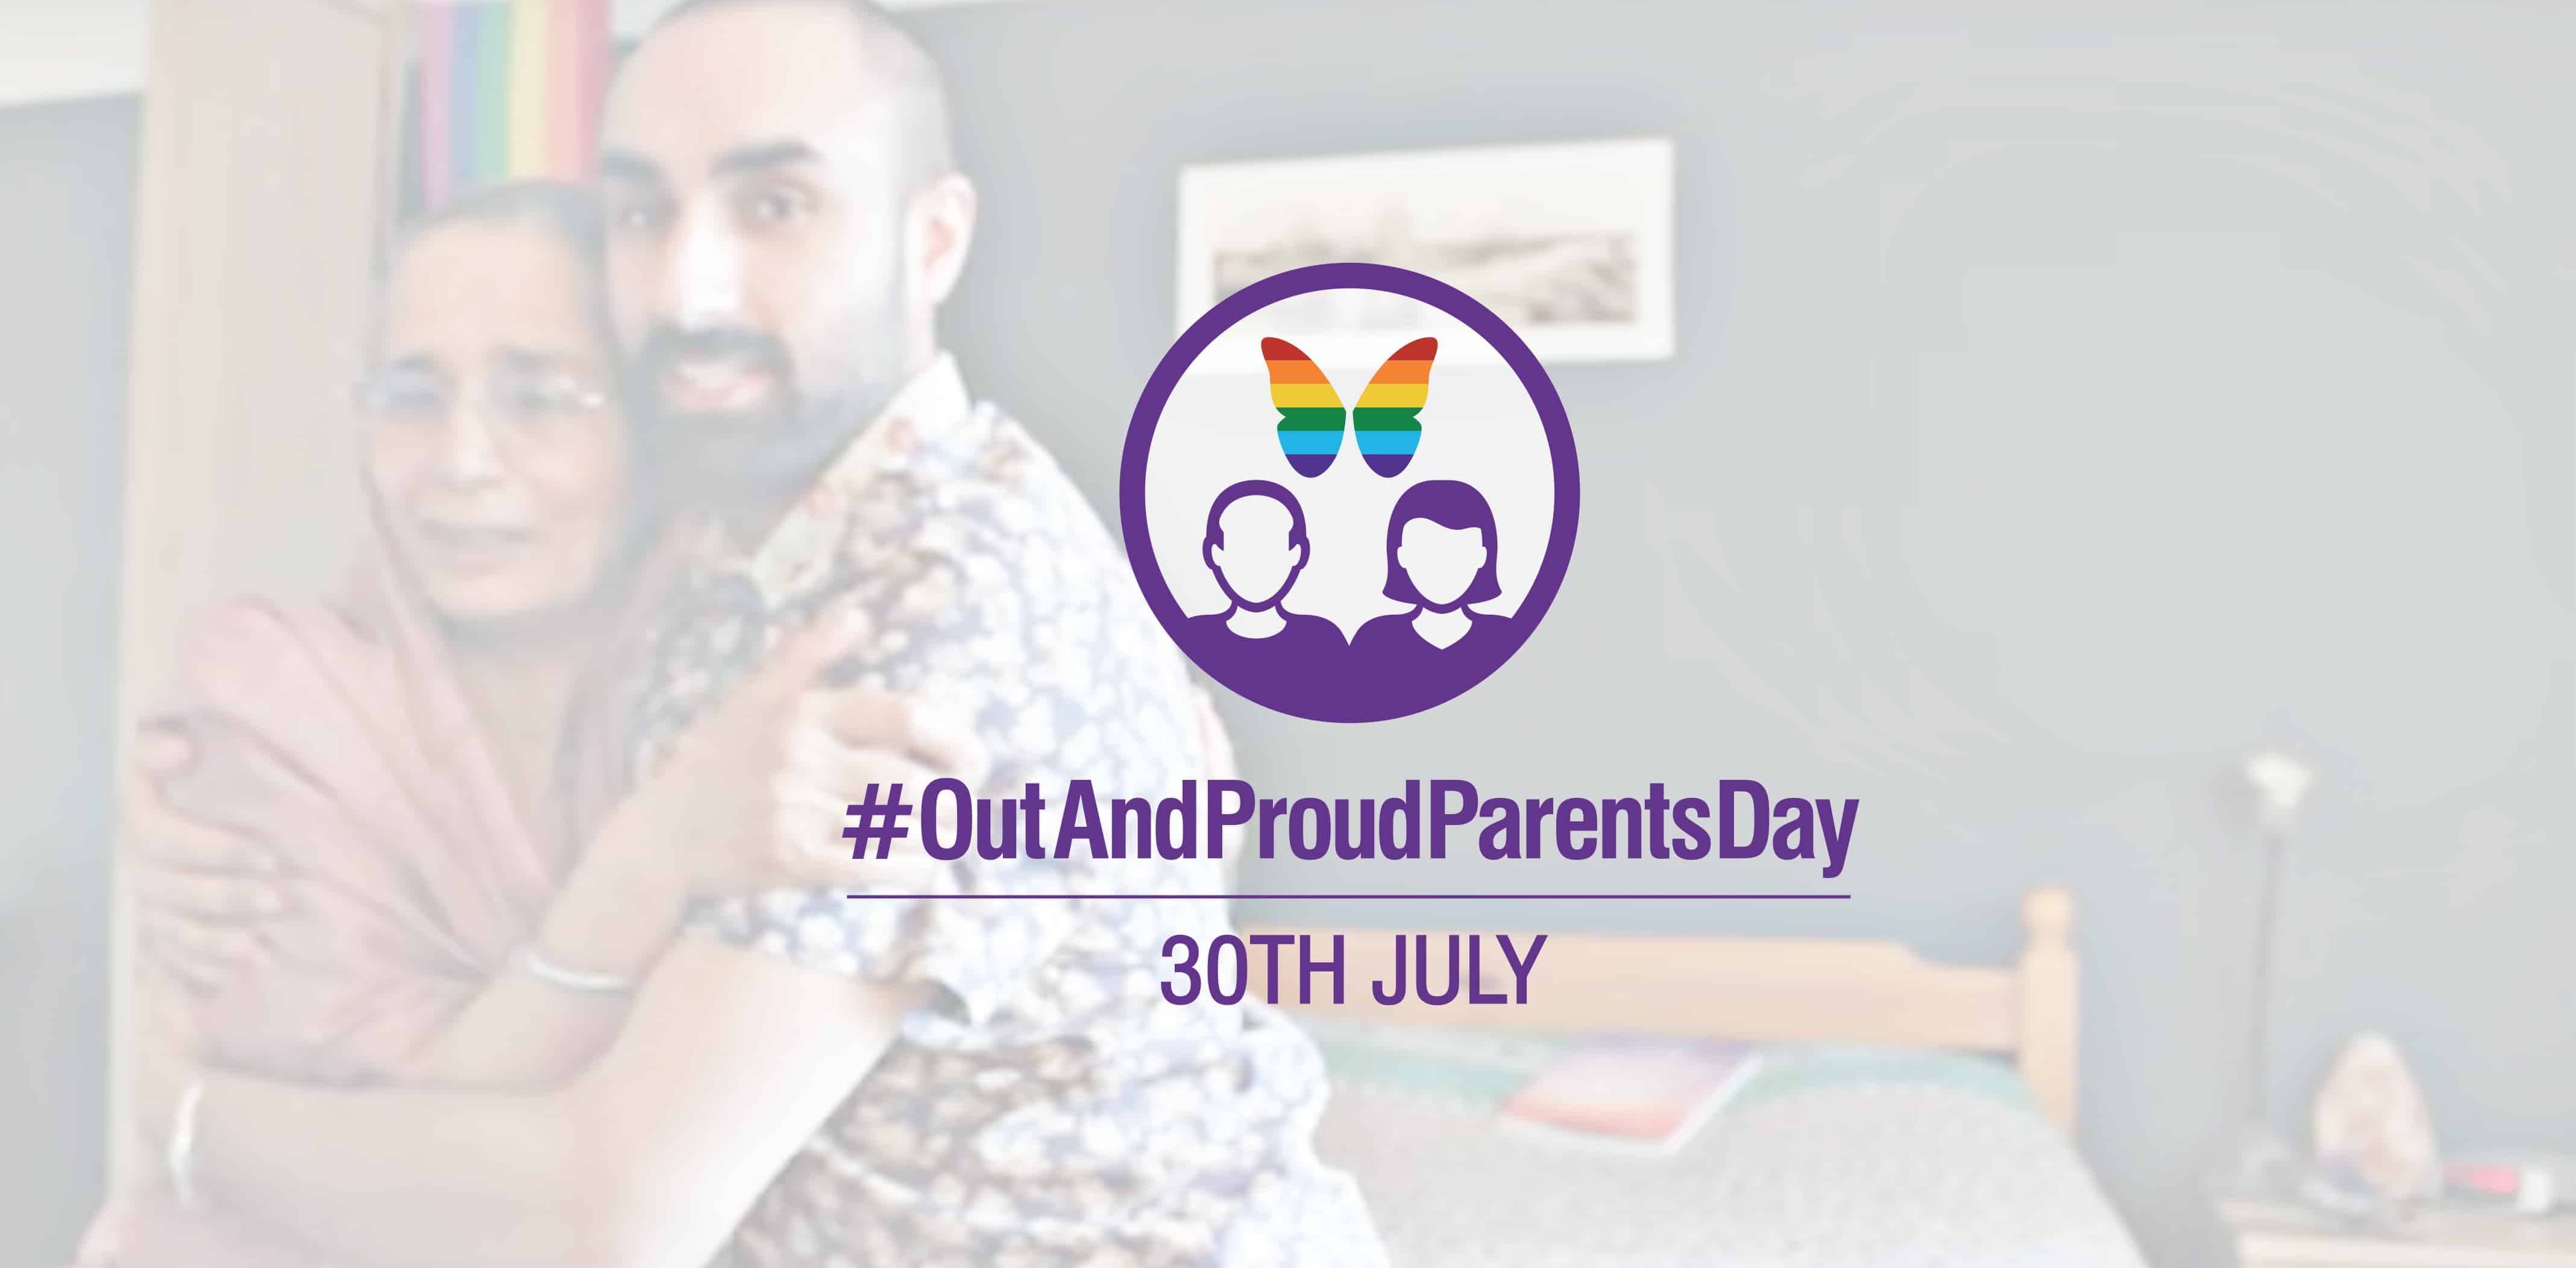 Out and Proud Parents Day - Manjinder and Mum